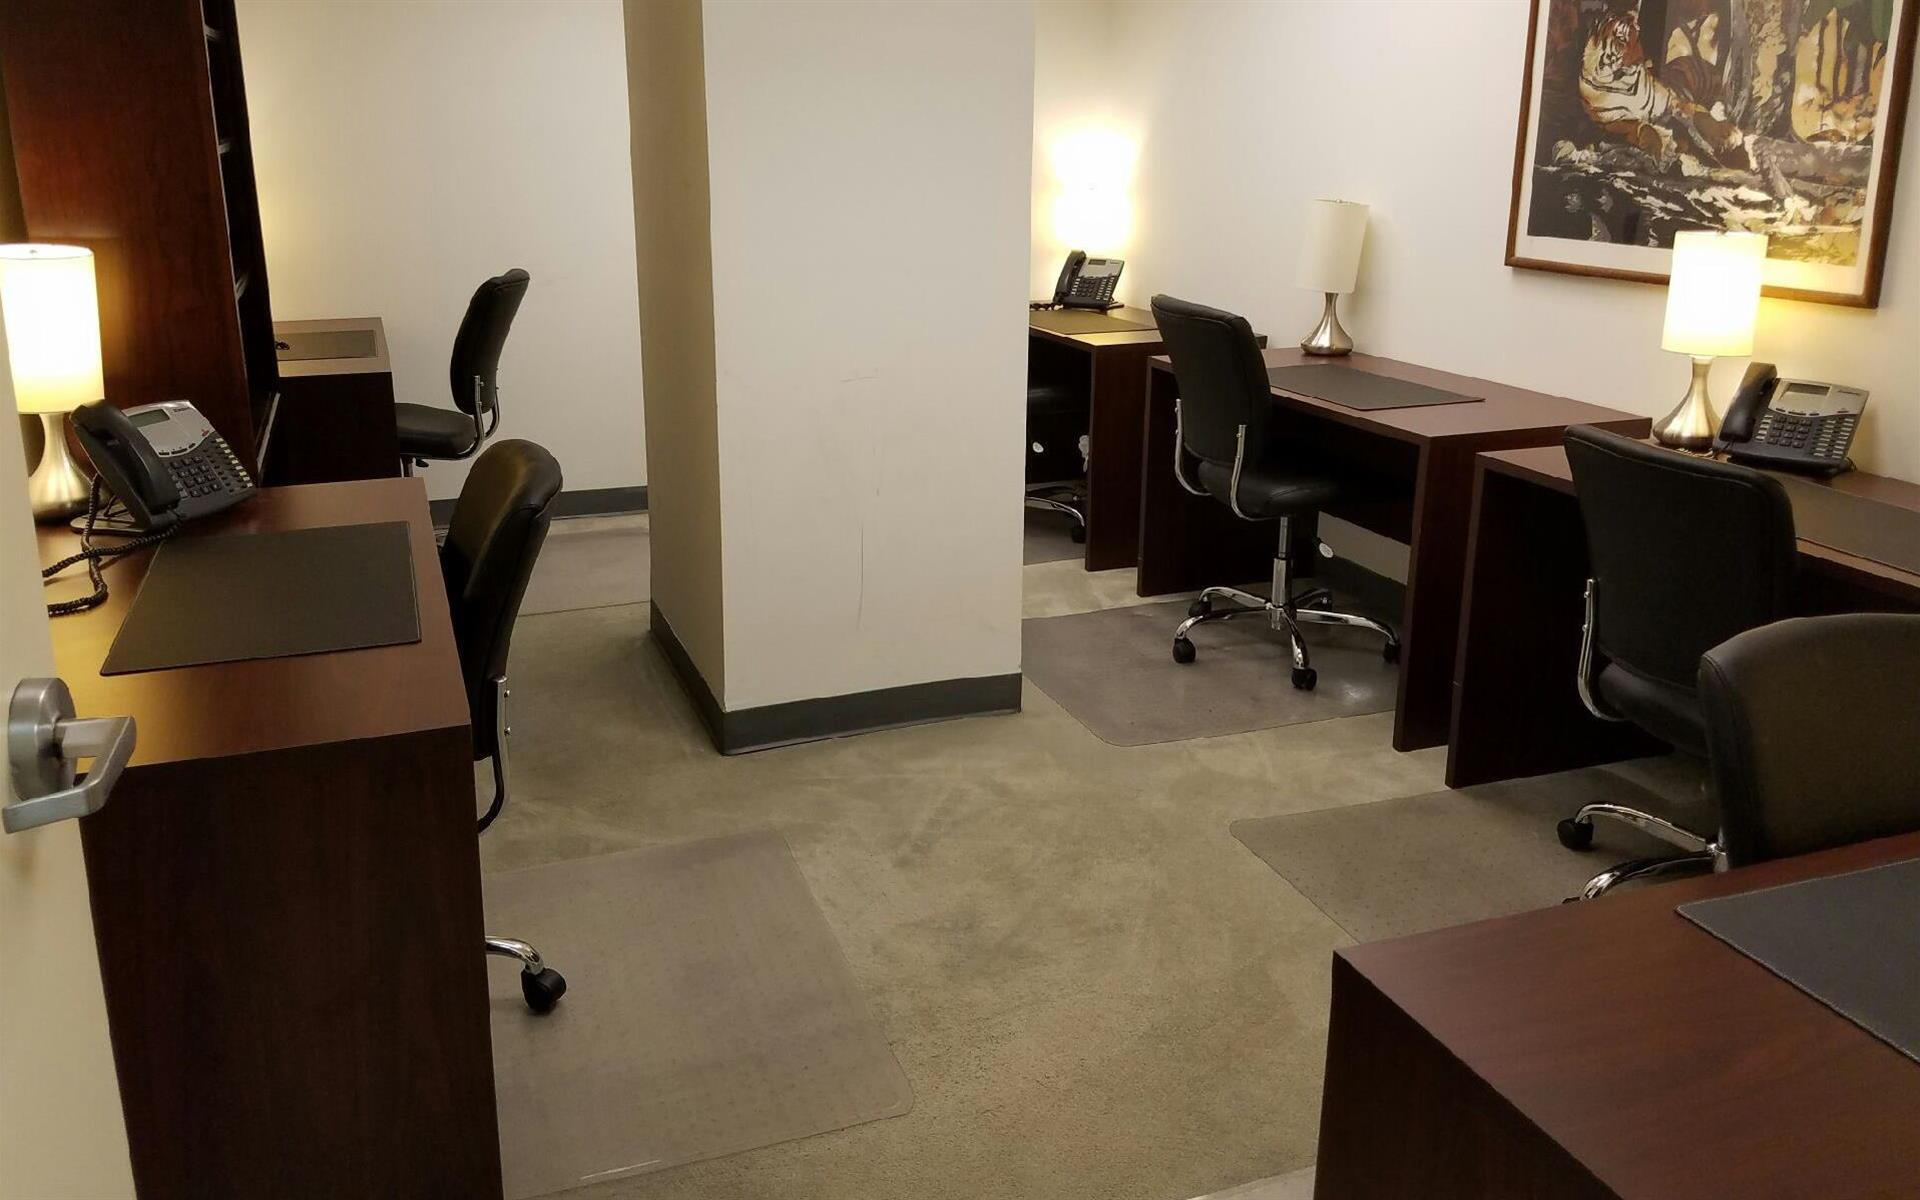 NYC Office Suites 708 (3rd Ave. & 44th) - Office 146 for 6